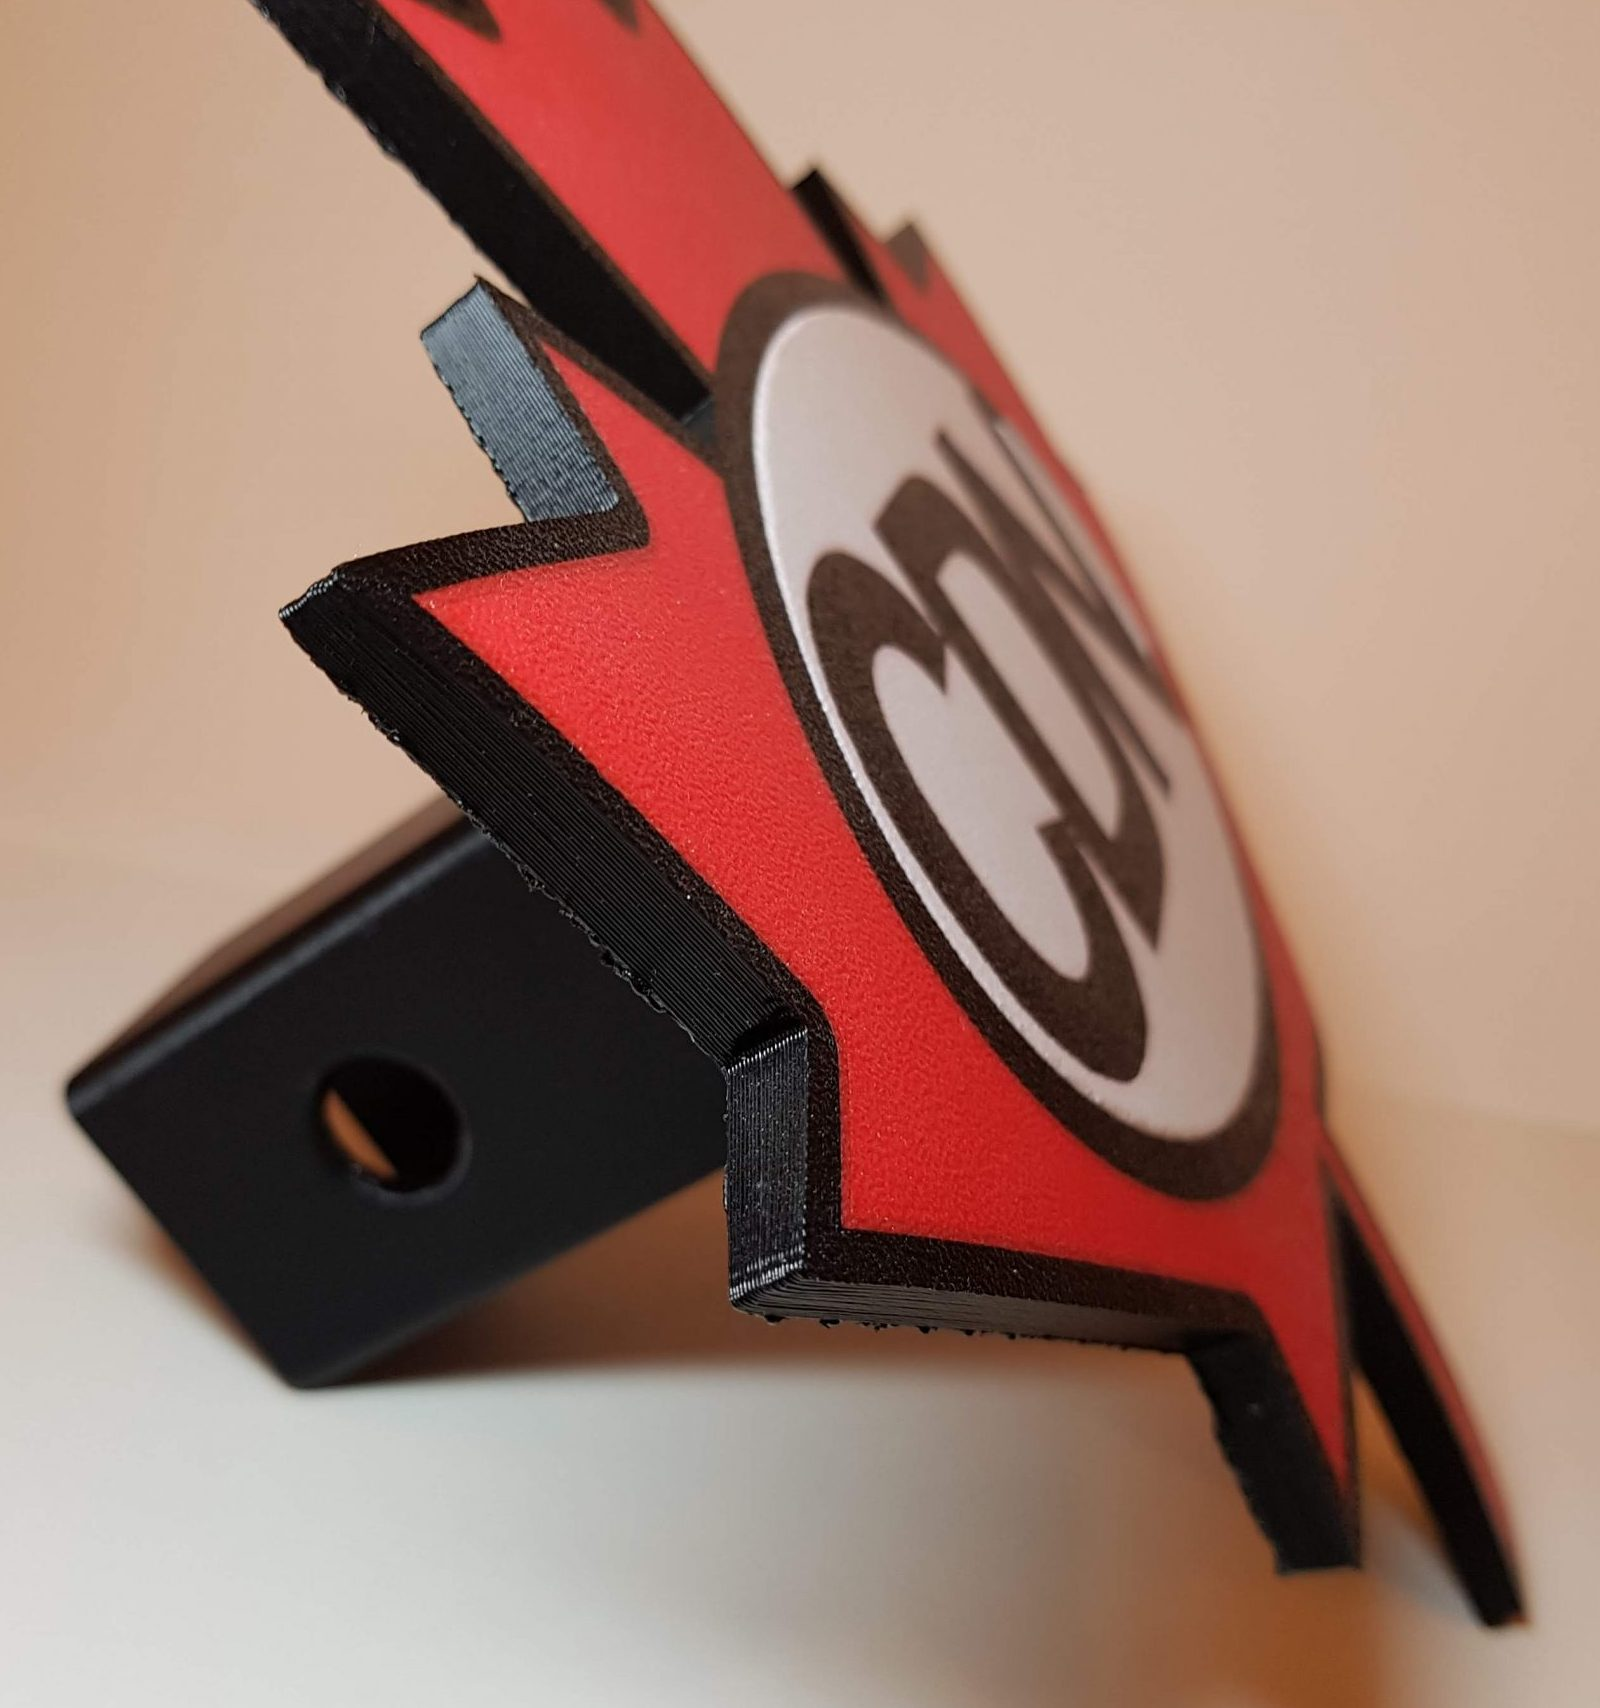 Canadian Trailer Hitch Cover - View 2 - 3D Printed By Wright Built on Prusa Mk2.5s MMU2s - Designed by Wright Built